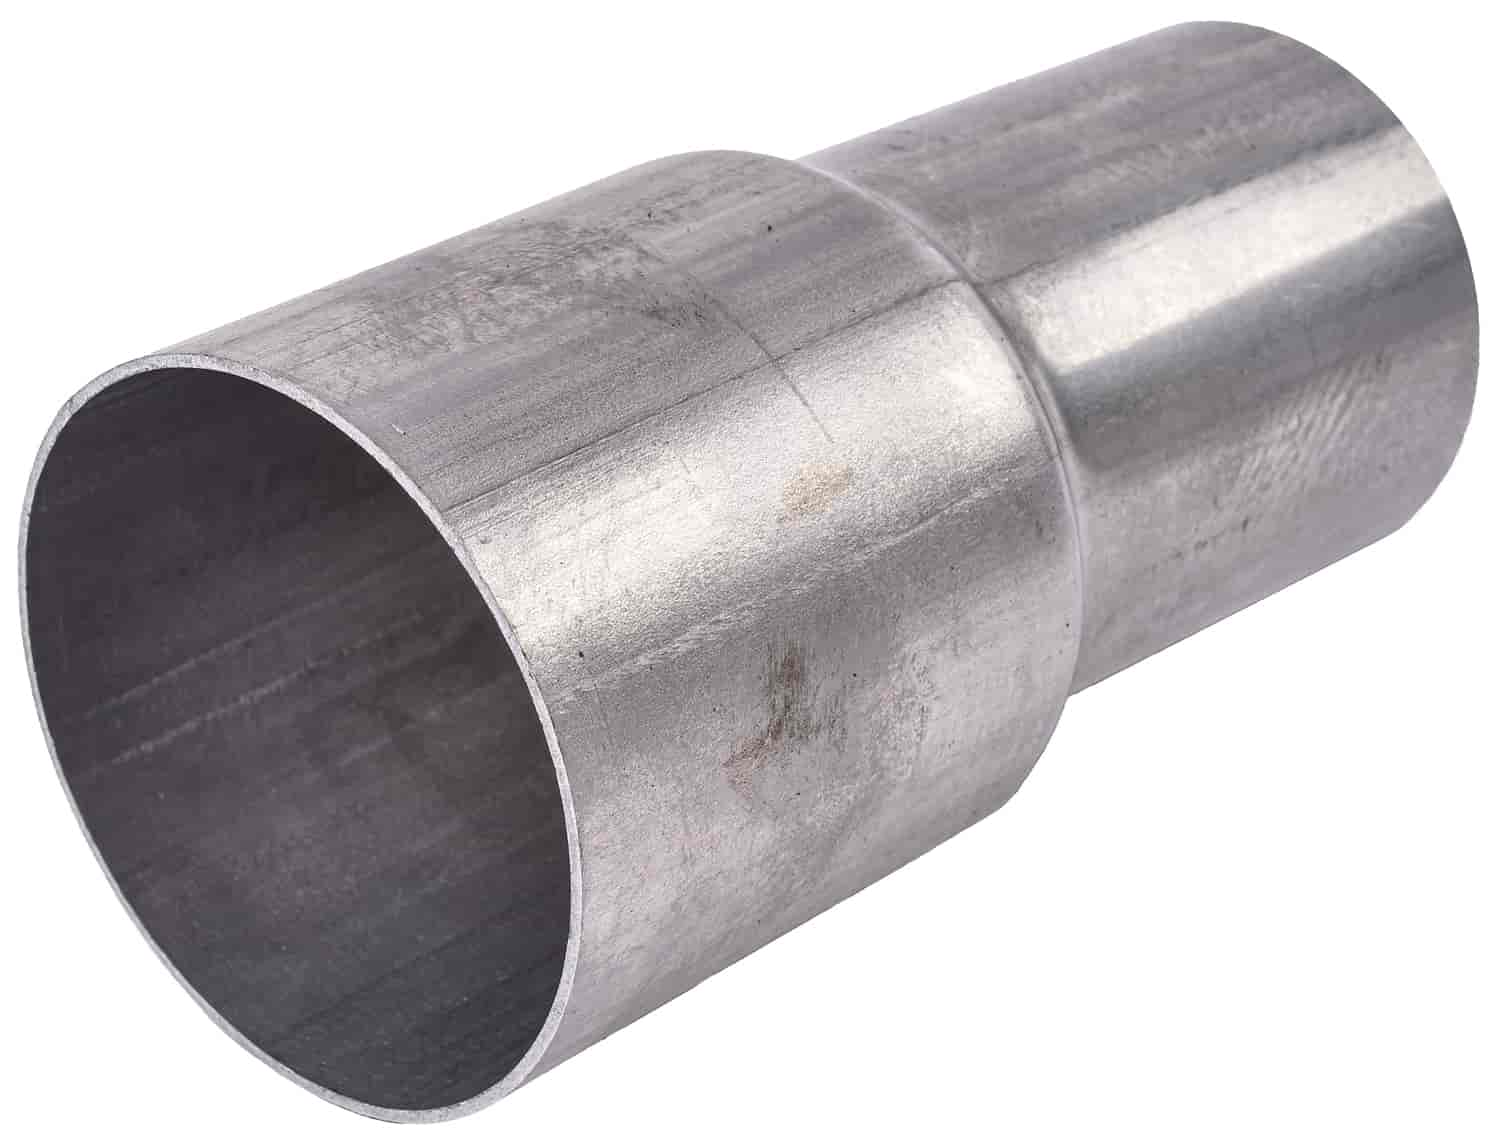 jegs slip on exhaust pipe adapter 2 1 2 od to 3 in od